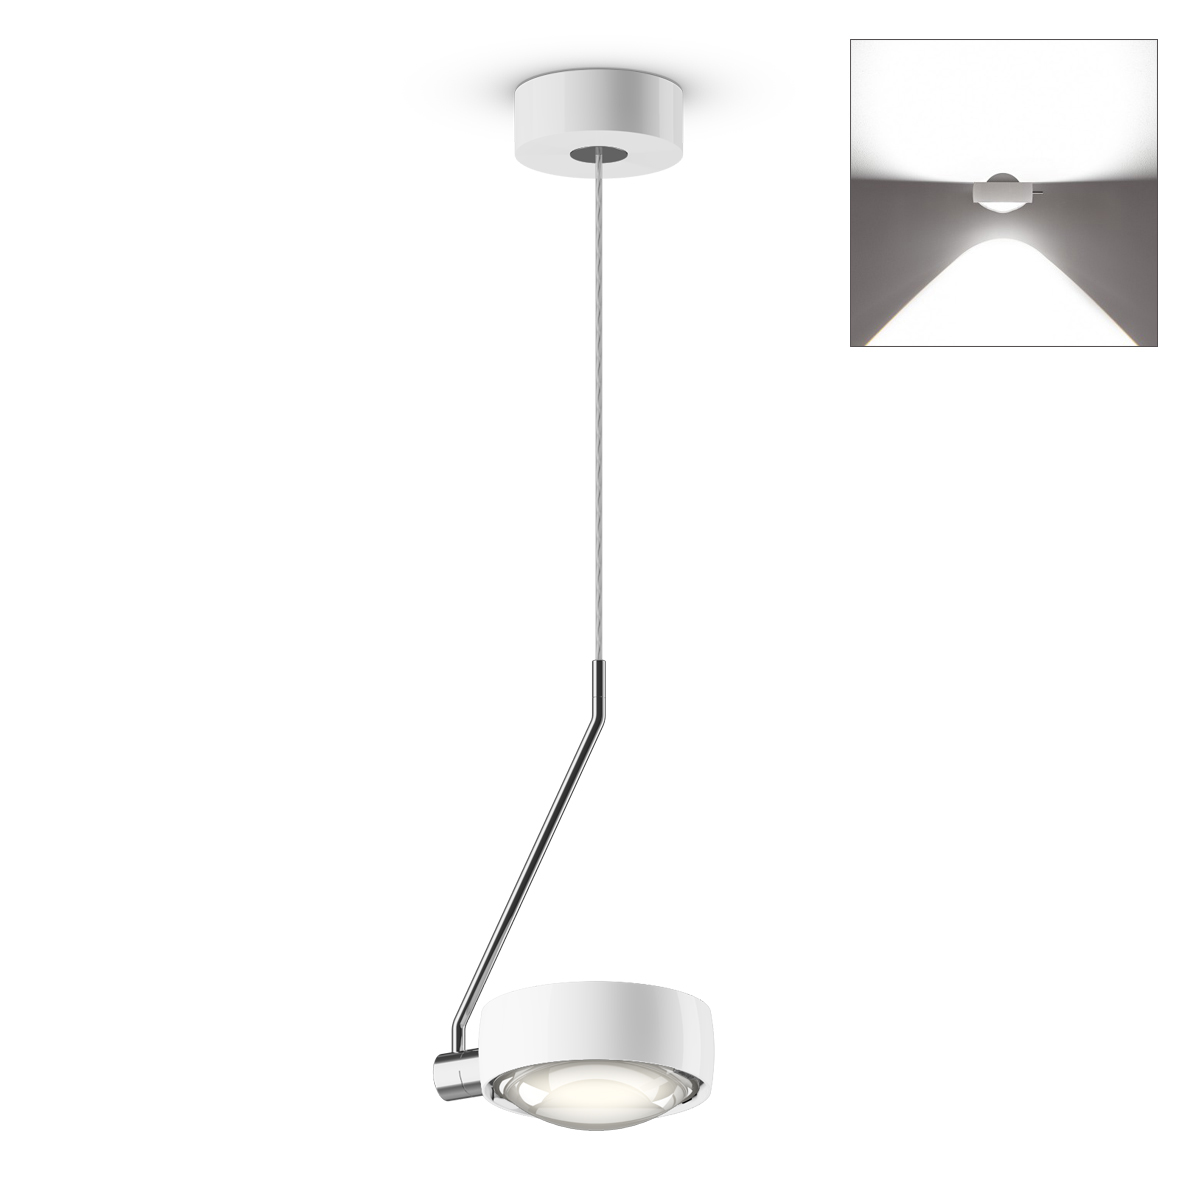 Led Pendelleuchte Avignon 80 Cm Find Every Shop In The World Selling Briloner Led Pendelleuchte W